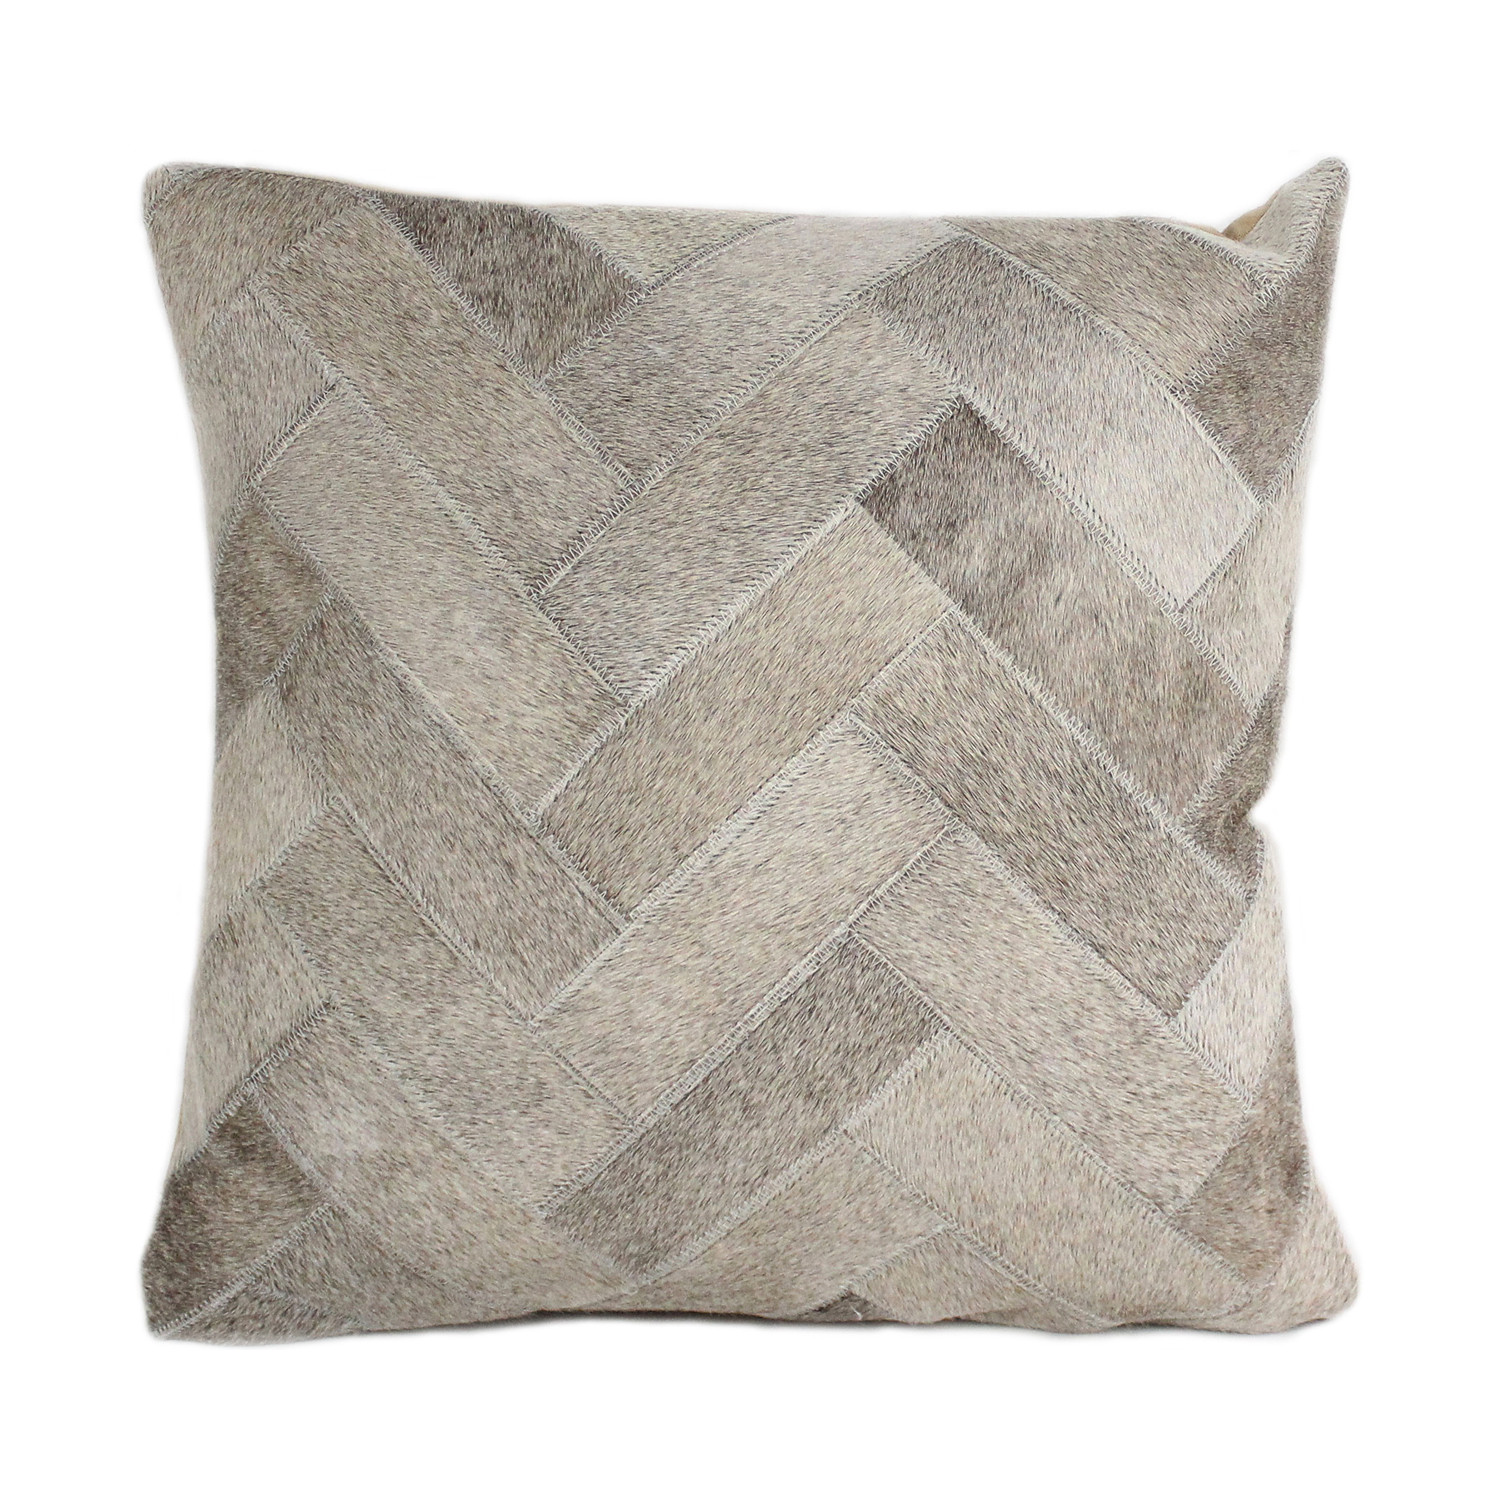 Arrowhead // Ash // Cowhide Pillow (1 6